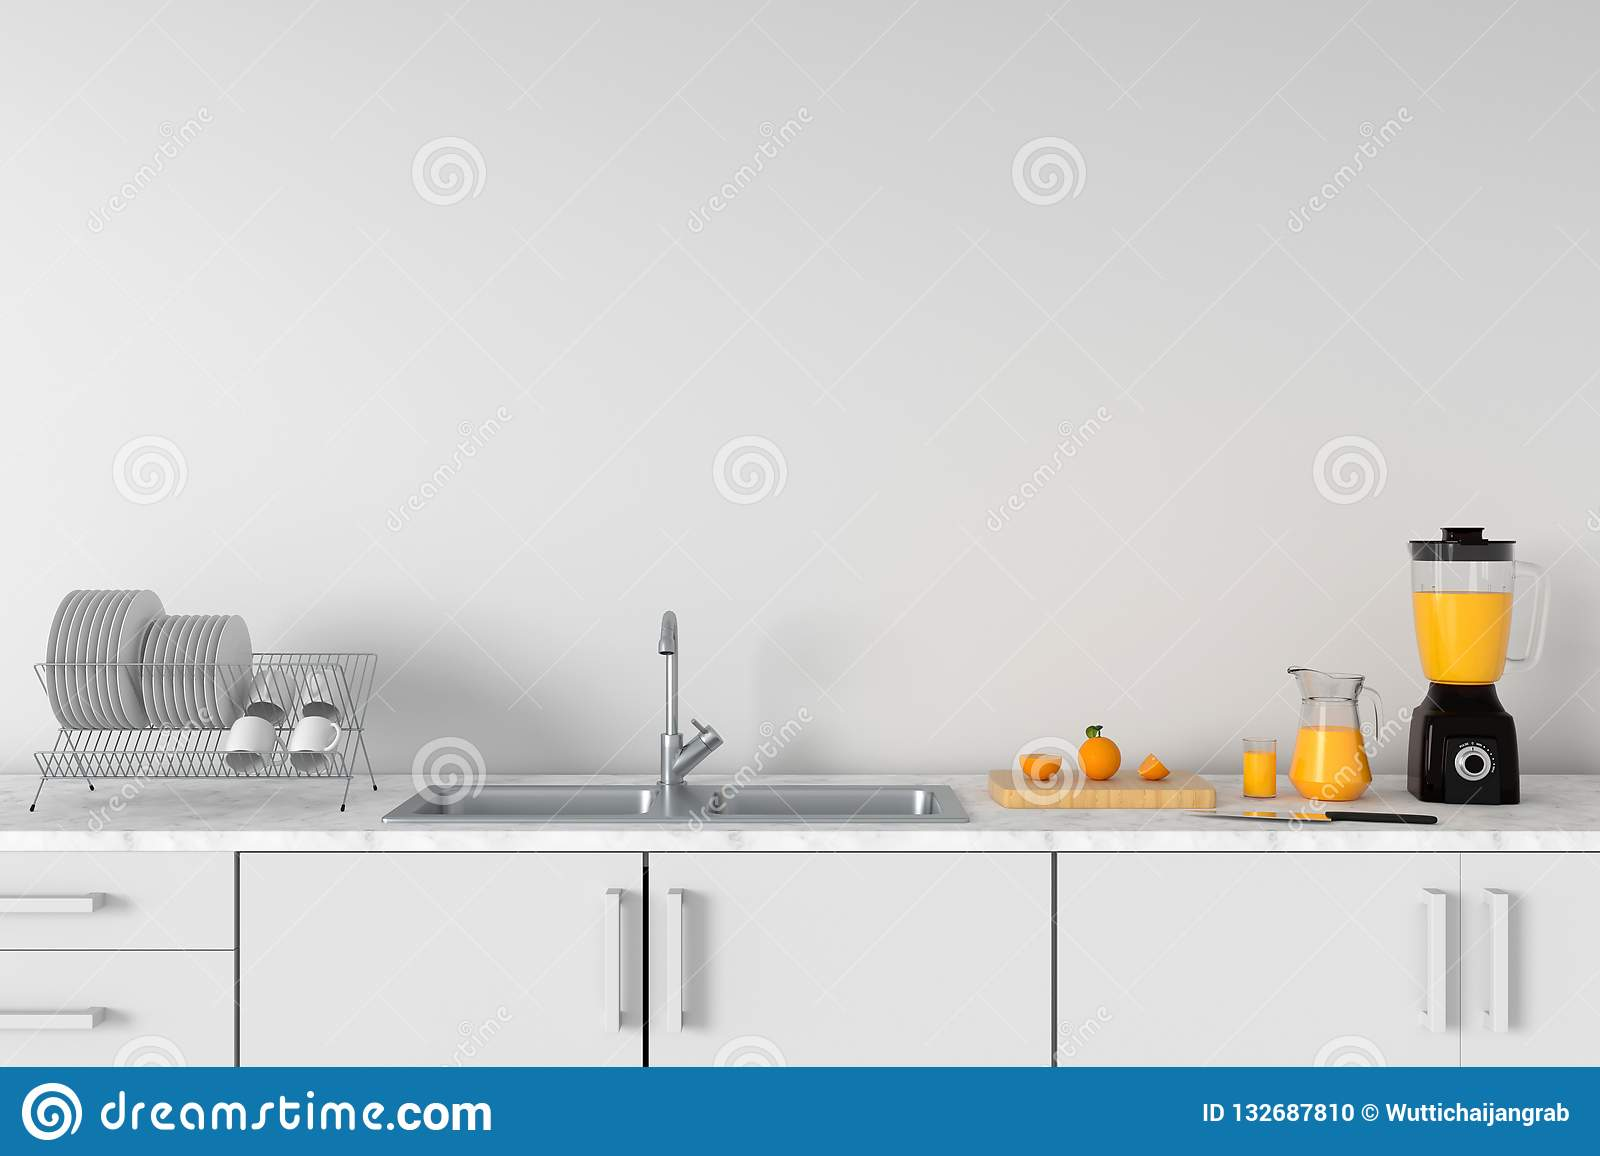 Modern white kitchen countertop with sink, 3D rendering